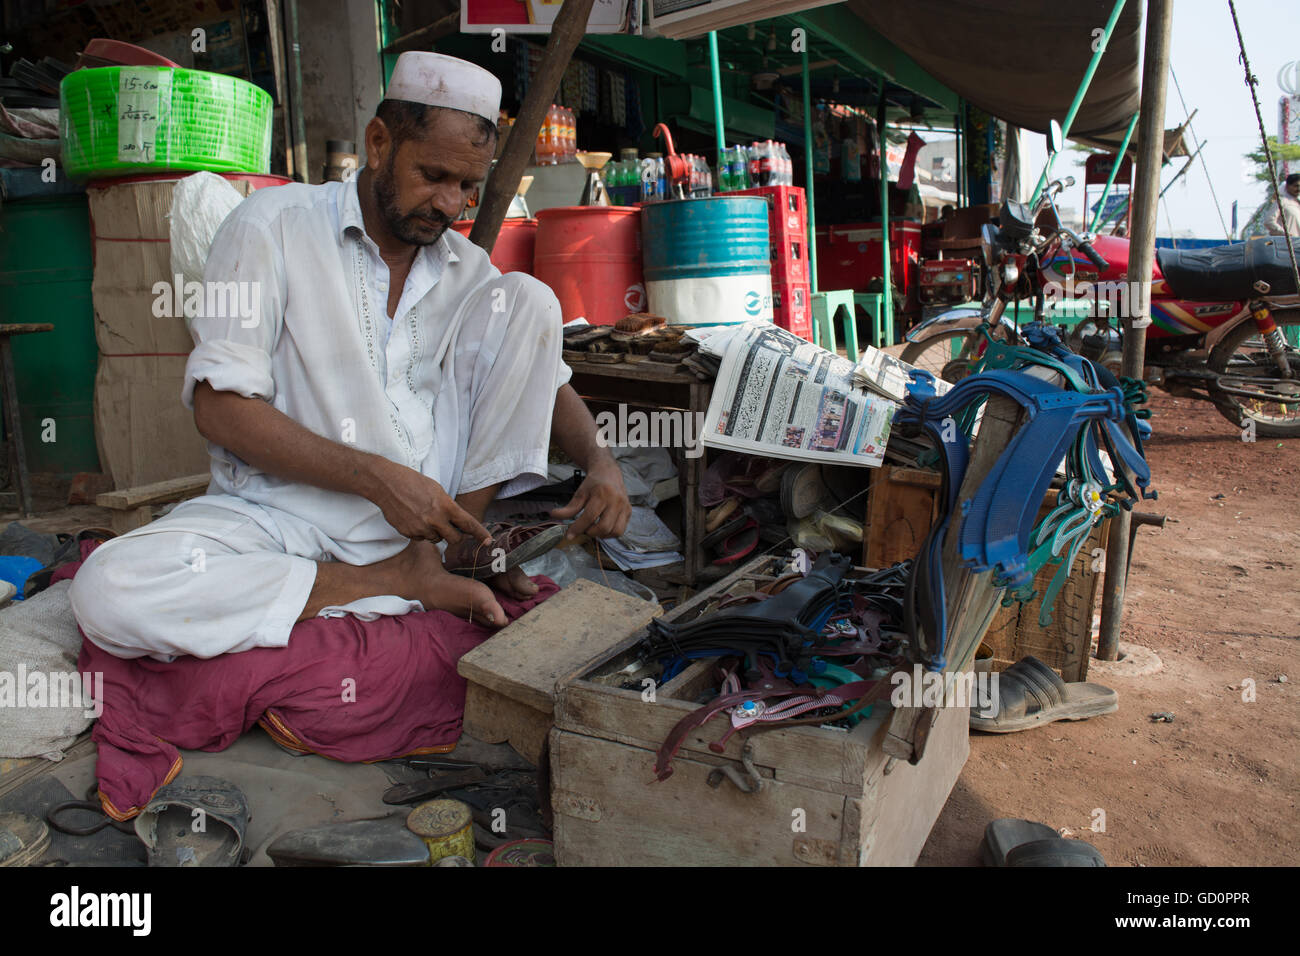 A cobbler is repairing shoes on roadside to earn money for his family even in hot weather on main road of city Pindi - Stock Image